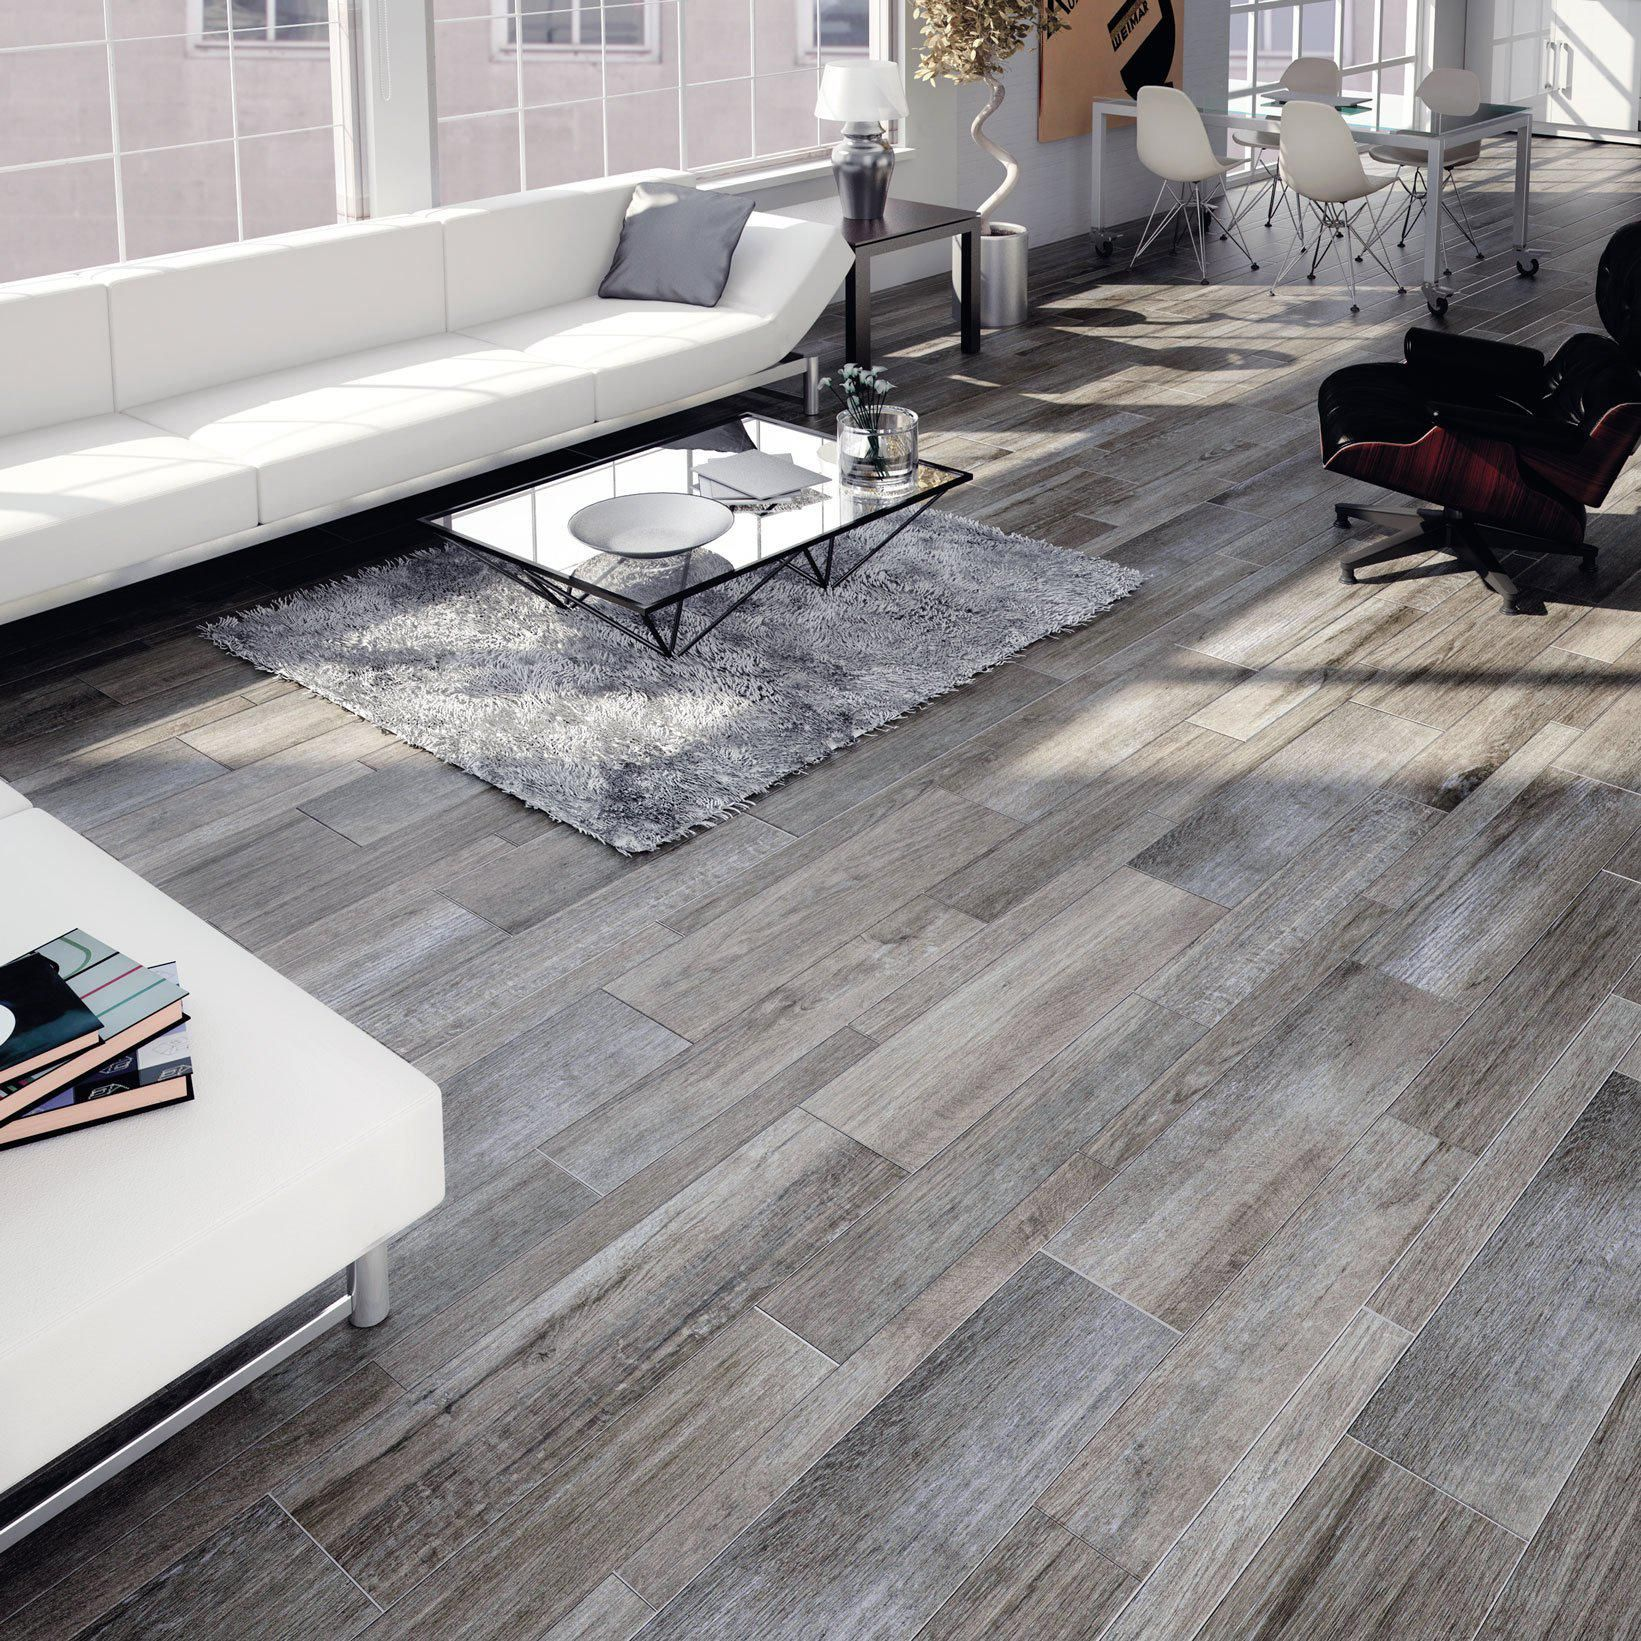 12 Rovere Gris Gray Wood Look Tile   Sample